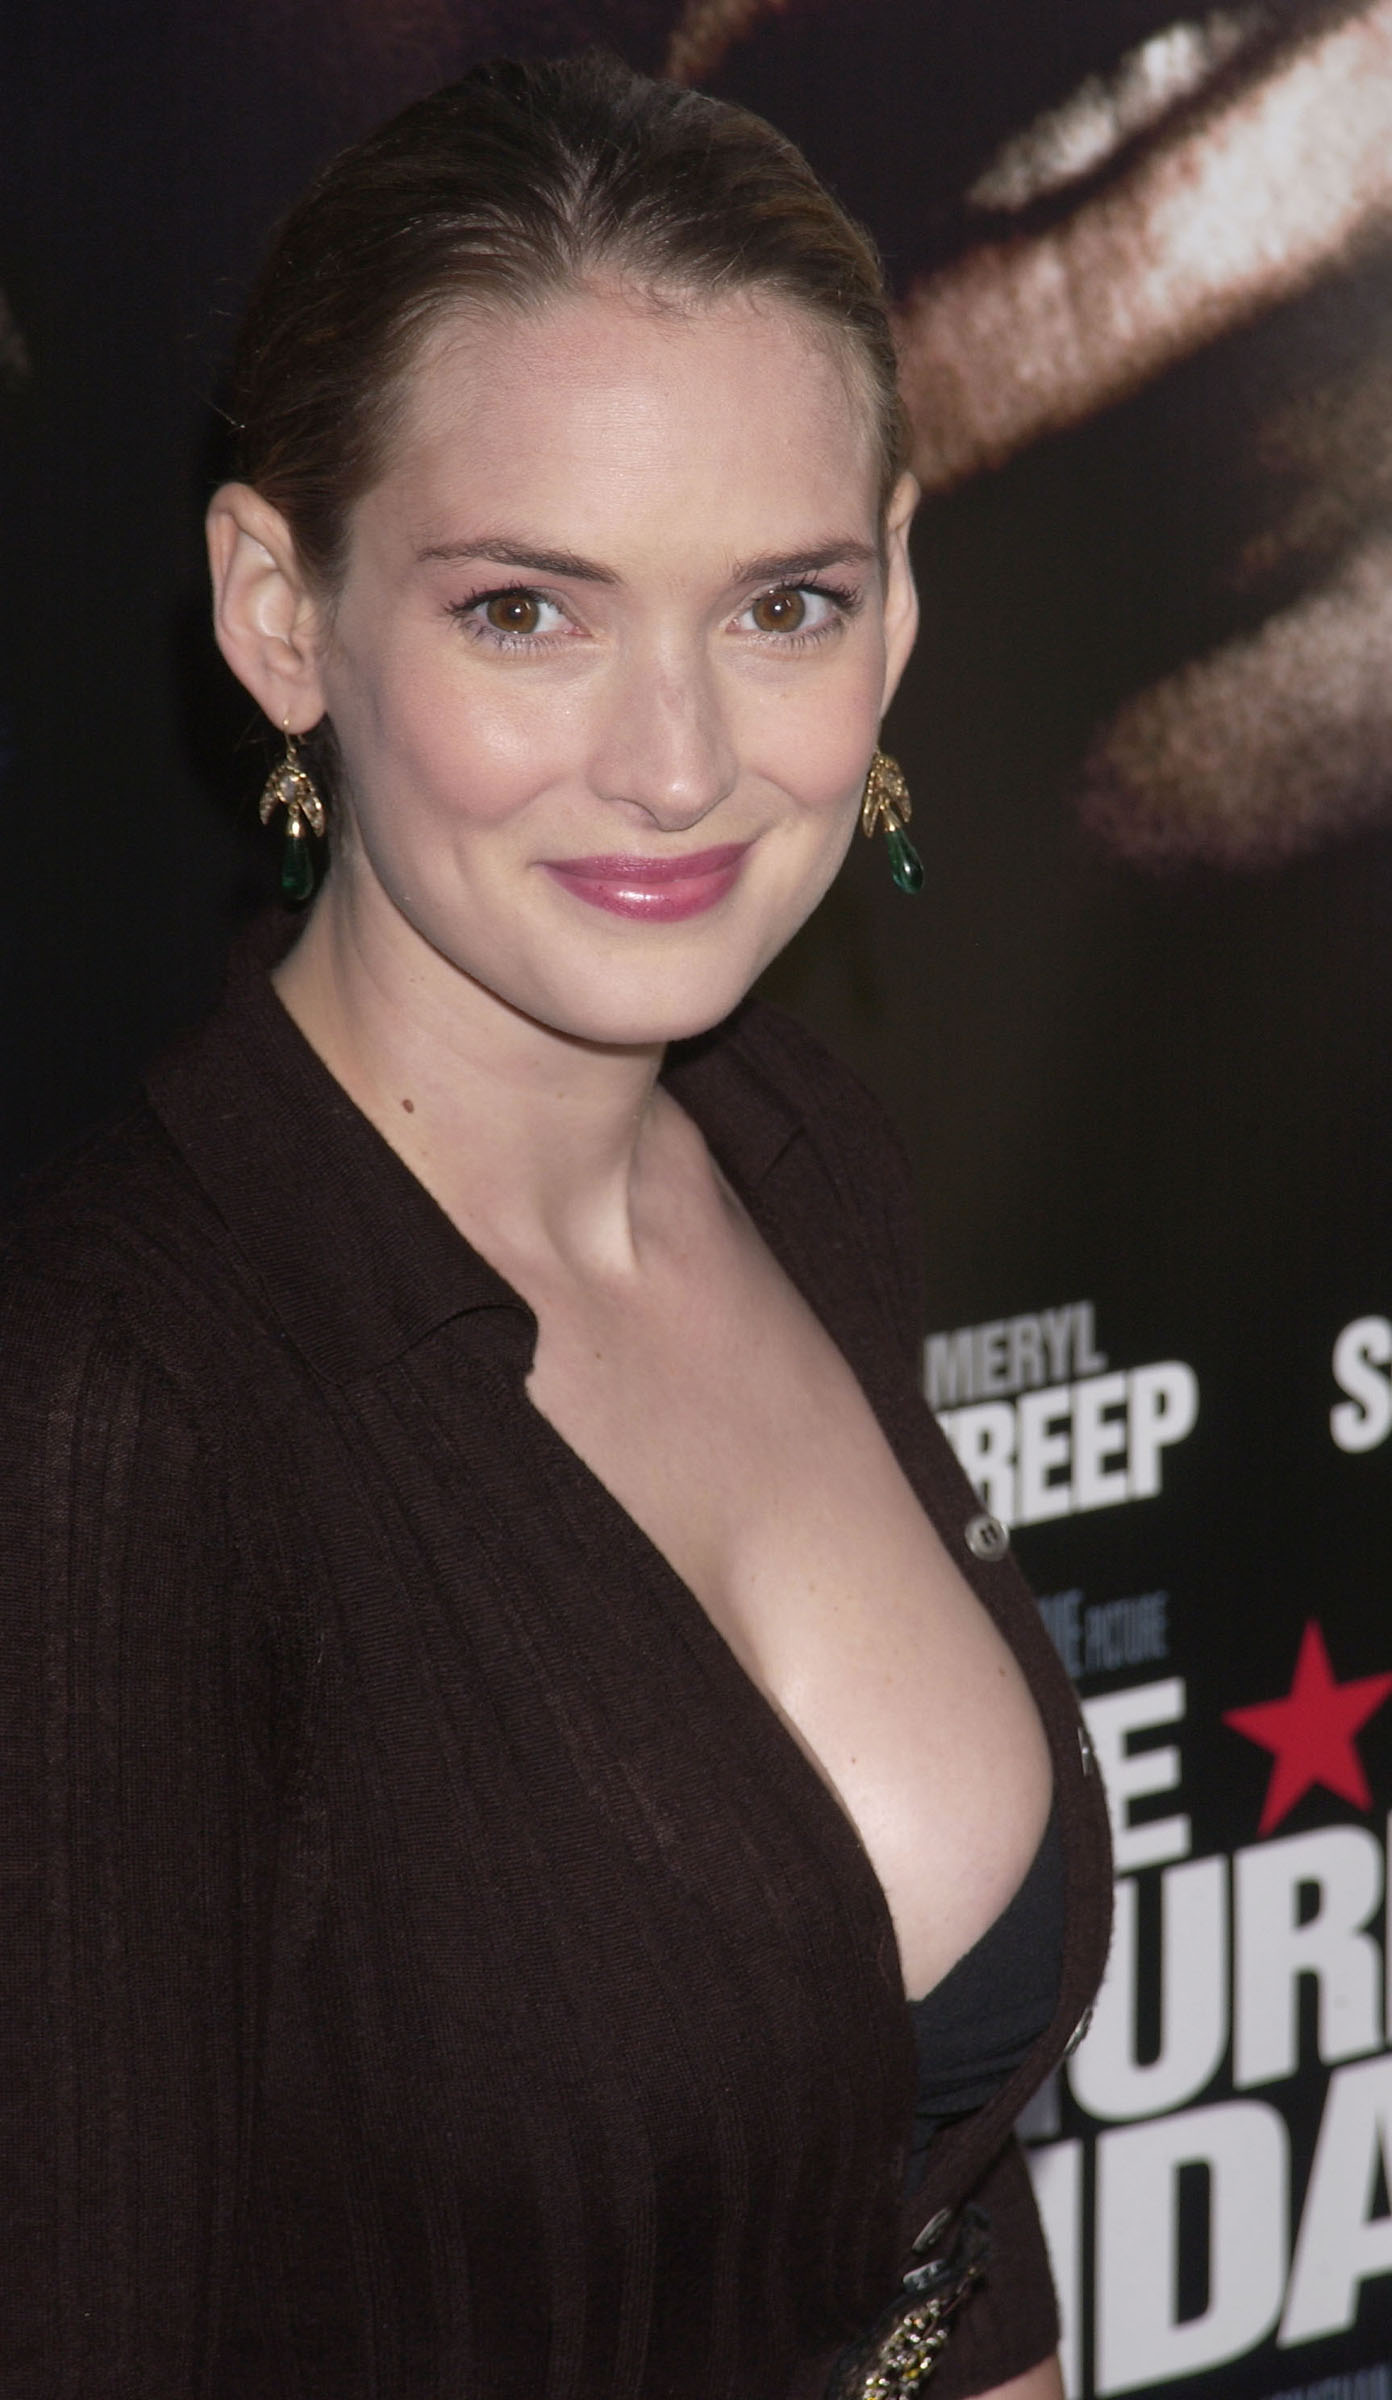 Winona Ryder Nude Photos and Videos | #TheFappening